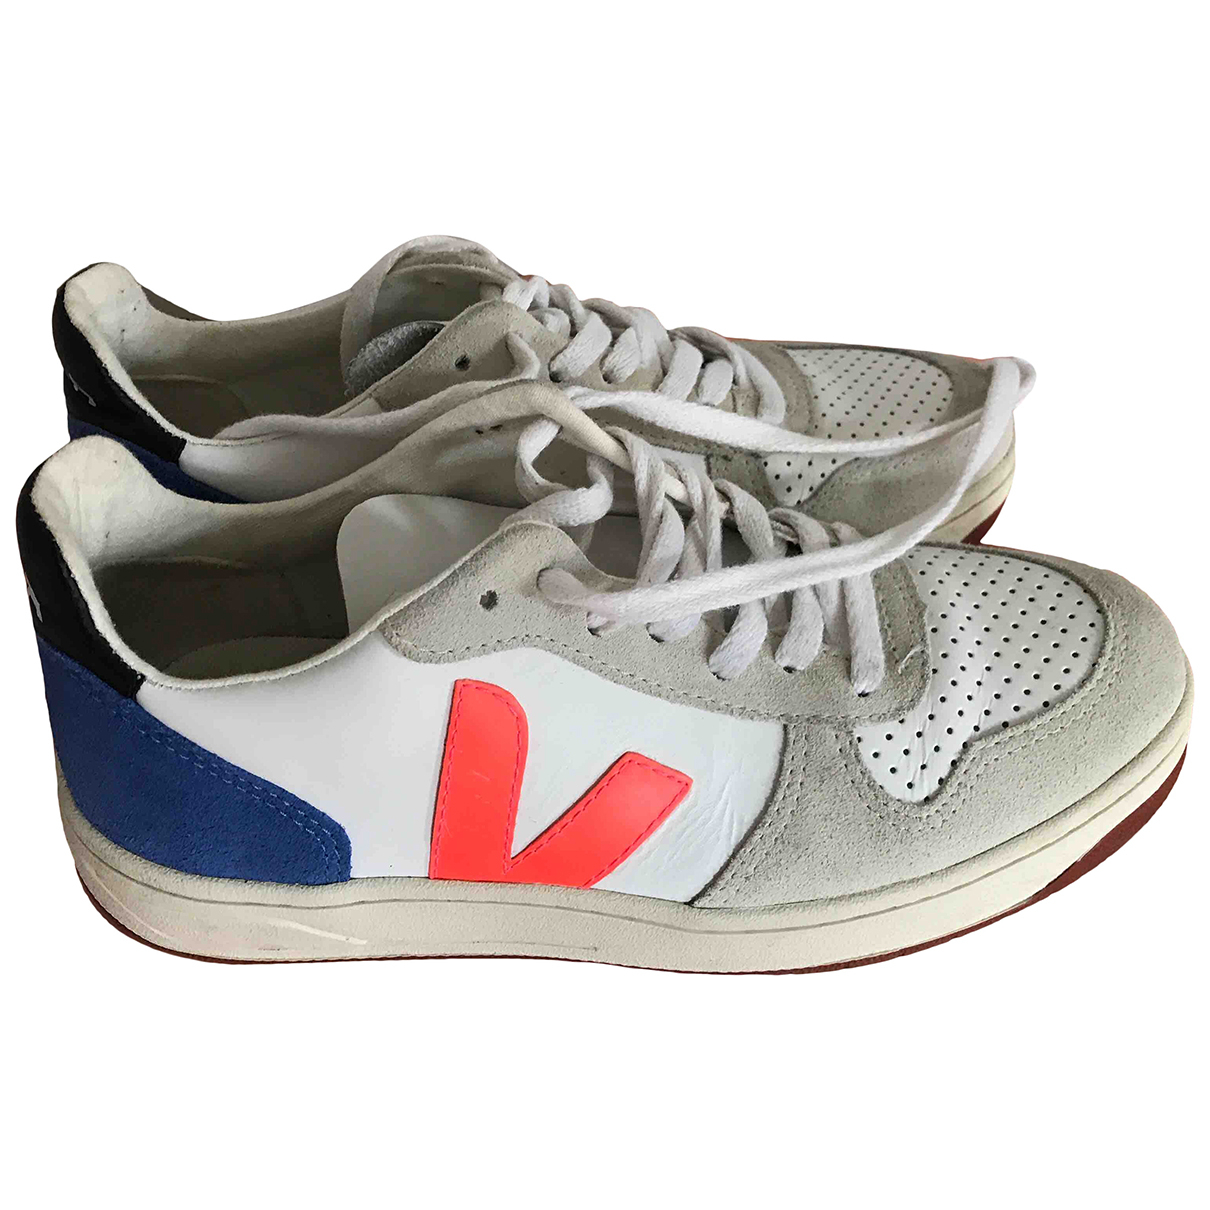 Vejas \N Sneakers in  Weiss Veloursleder